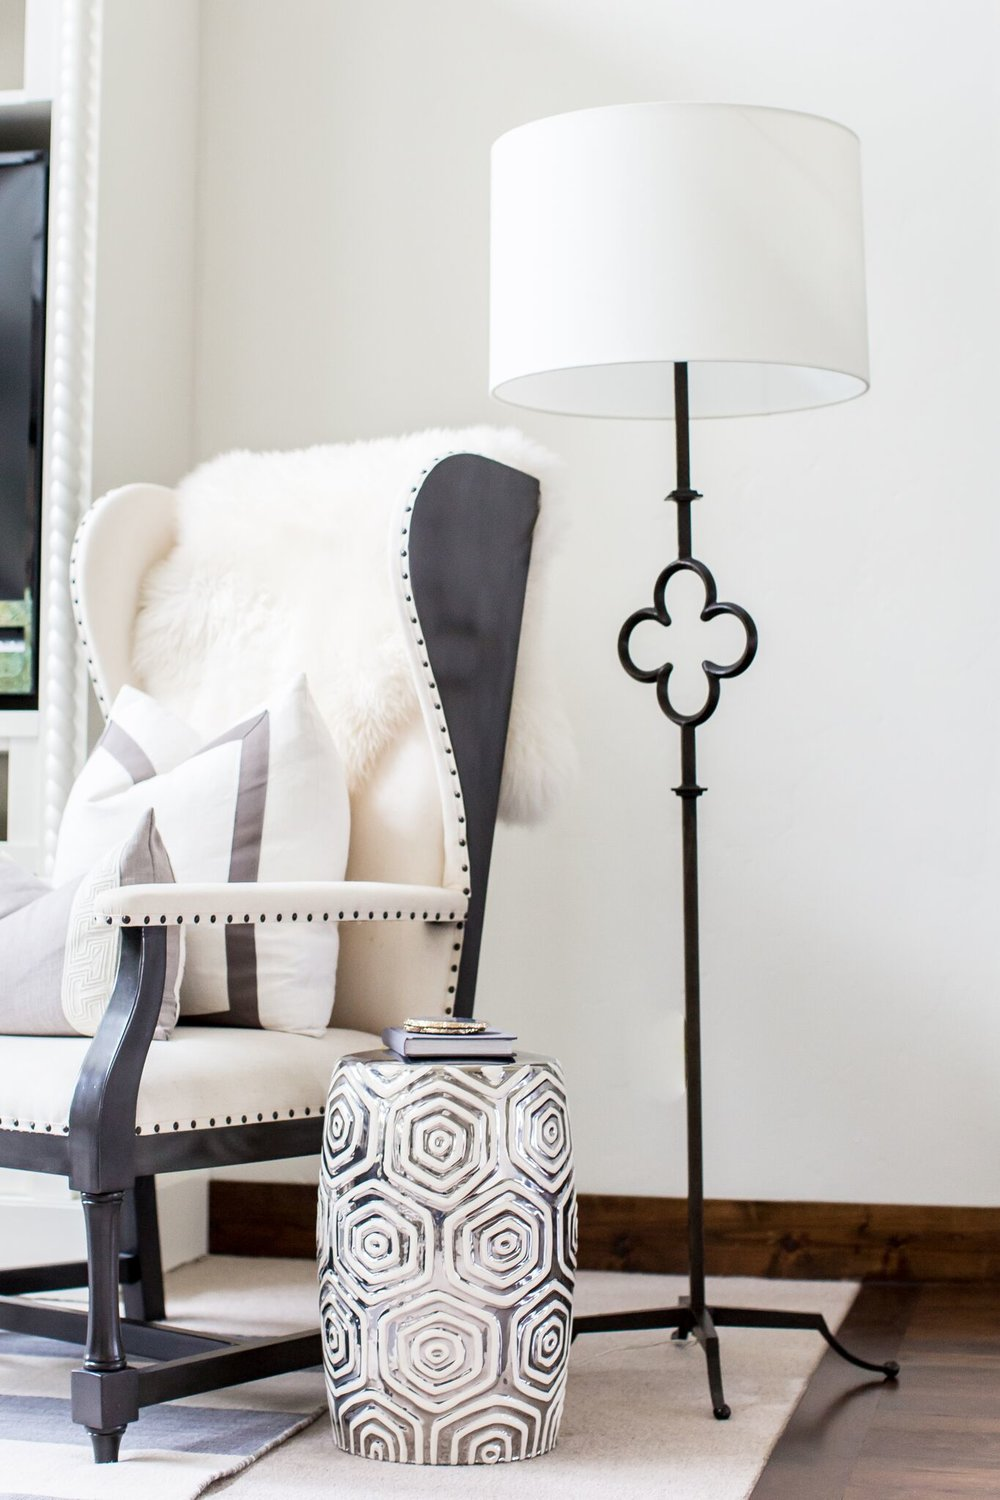 Floor Lamps, Tables Lamps And Task Lamps Should Be Found All Around A Space  For Multiples Uses And Lighting Control. Plus, Arenu0027t These Lamps Cute?